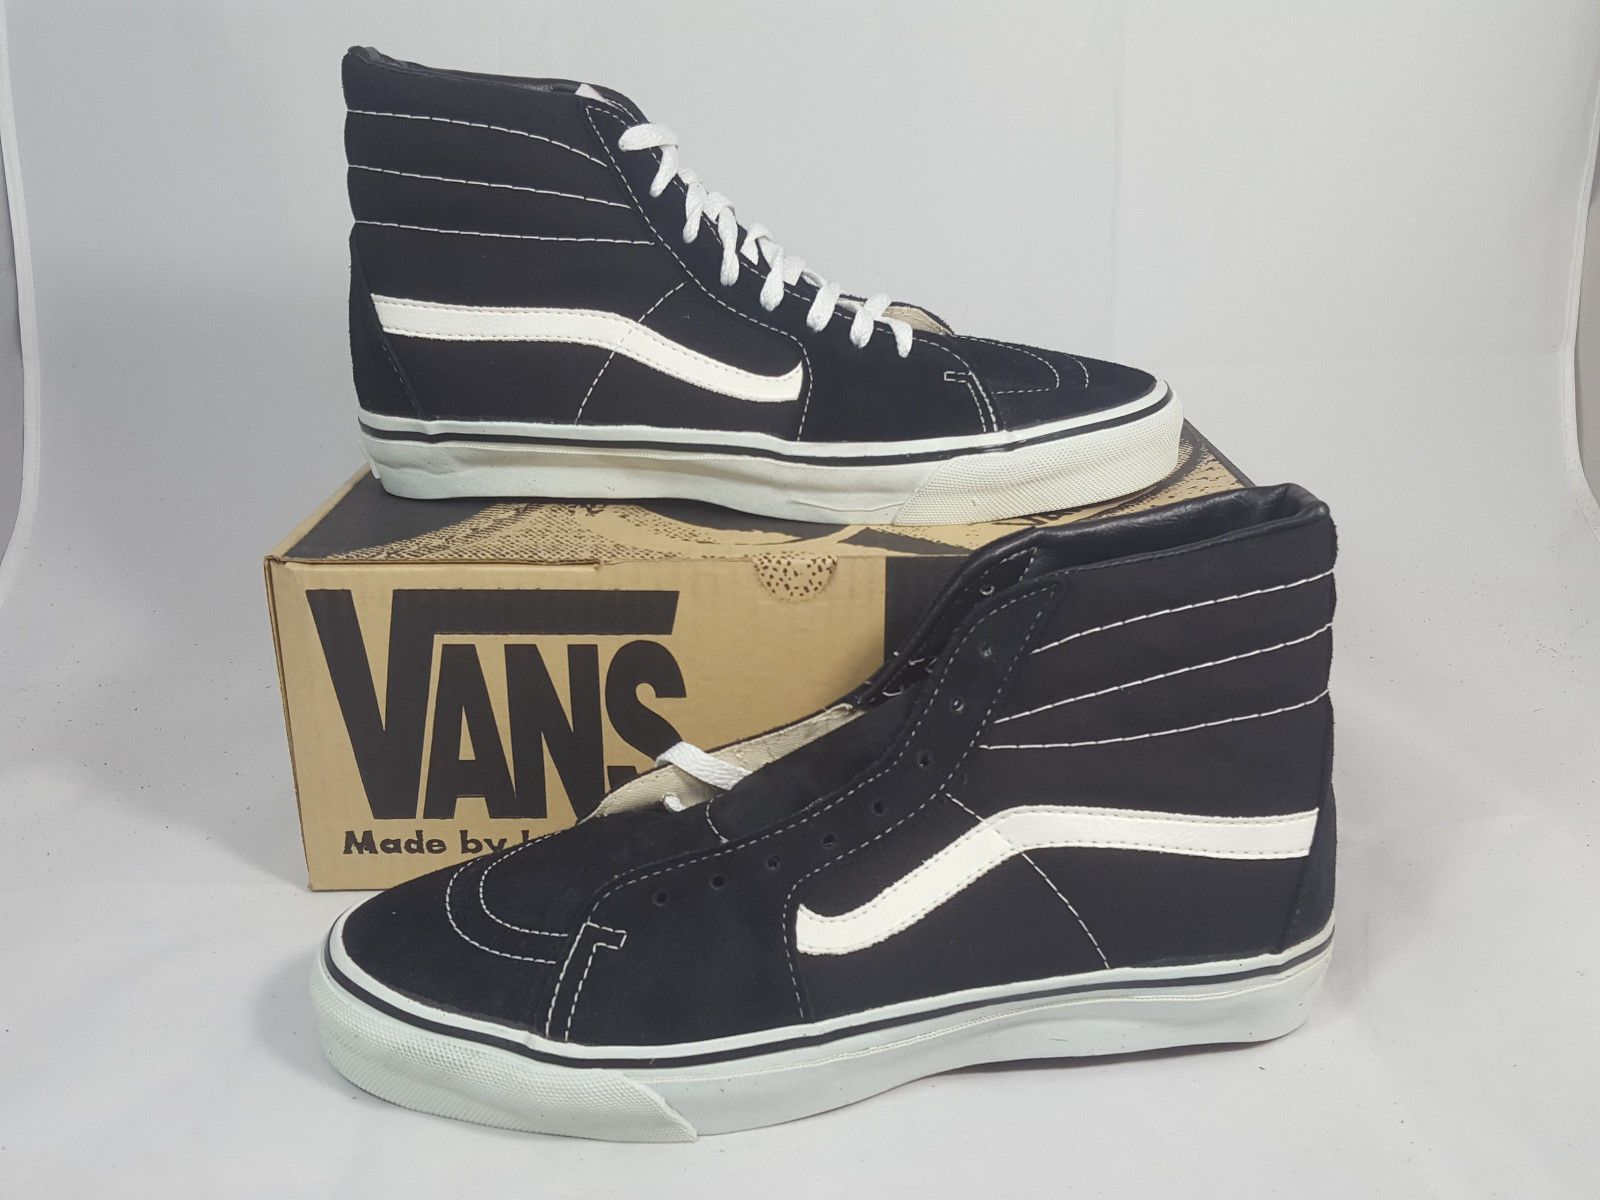 Vintage Vans shoes SK8 HI BLACK made in USA Men s Size 11 NOS Old Skool 80s 81a8d1e15